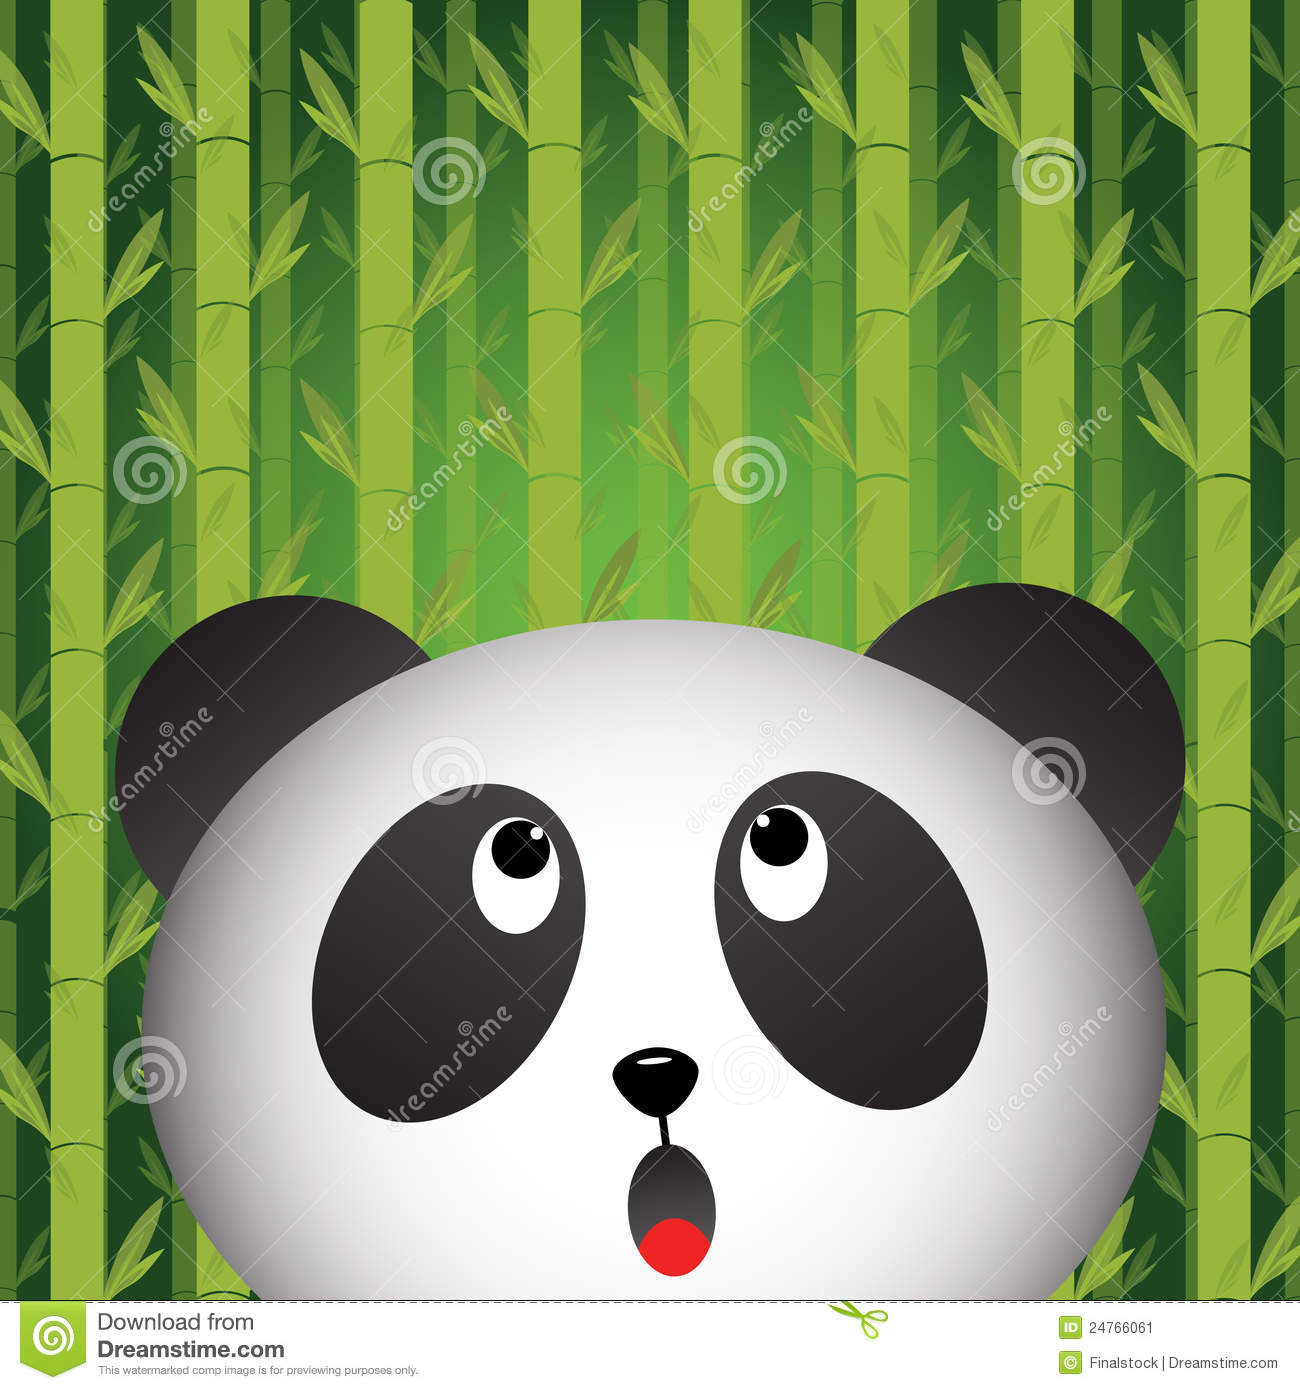 Hd Cute Panda Wallpaper Panda With Bamboo Background Stock Image Image 24766061